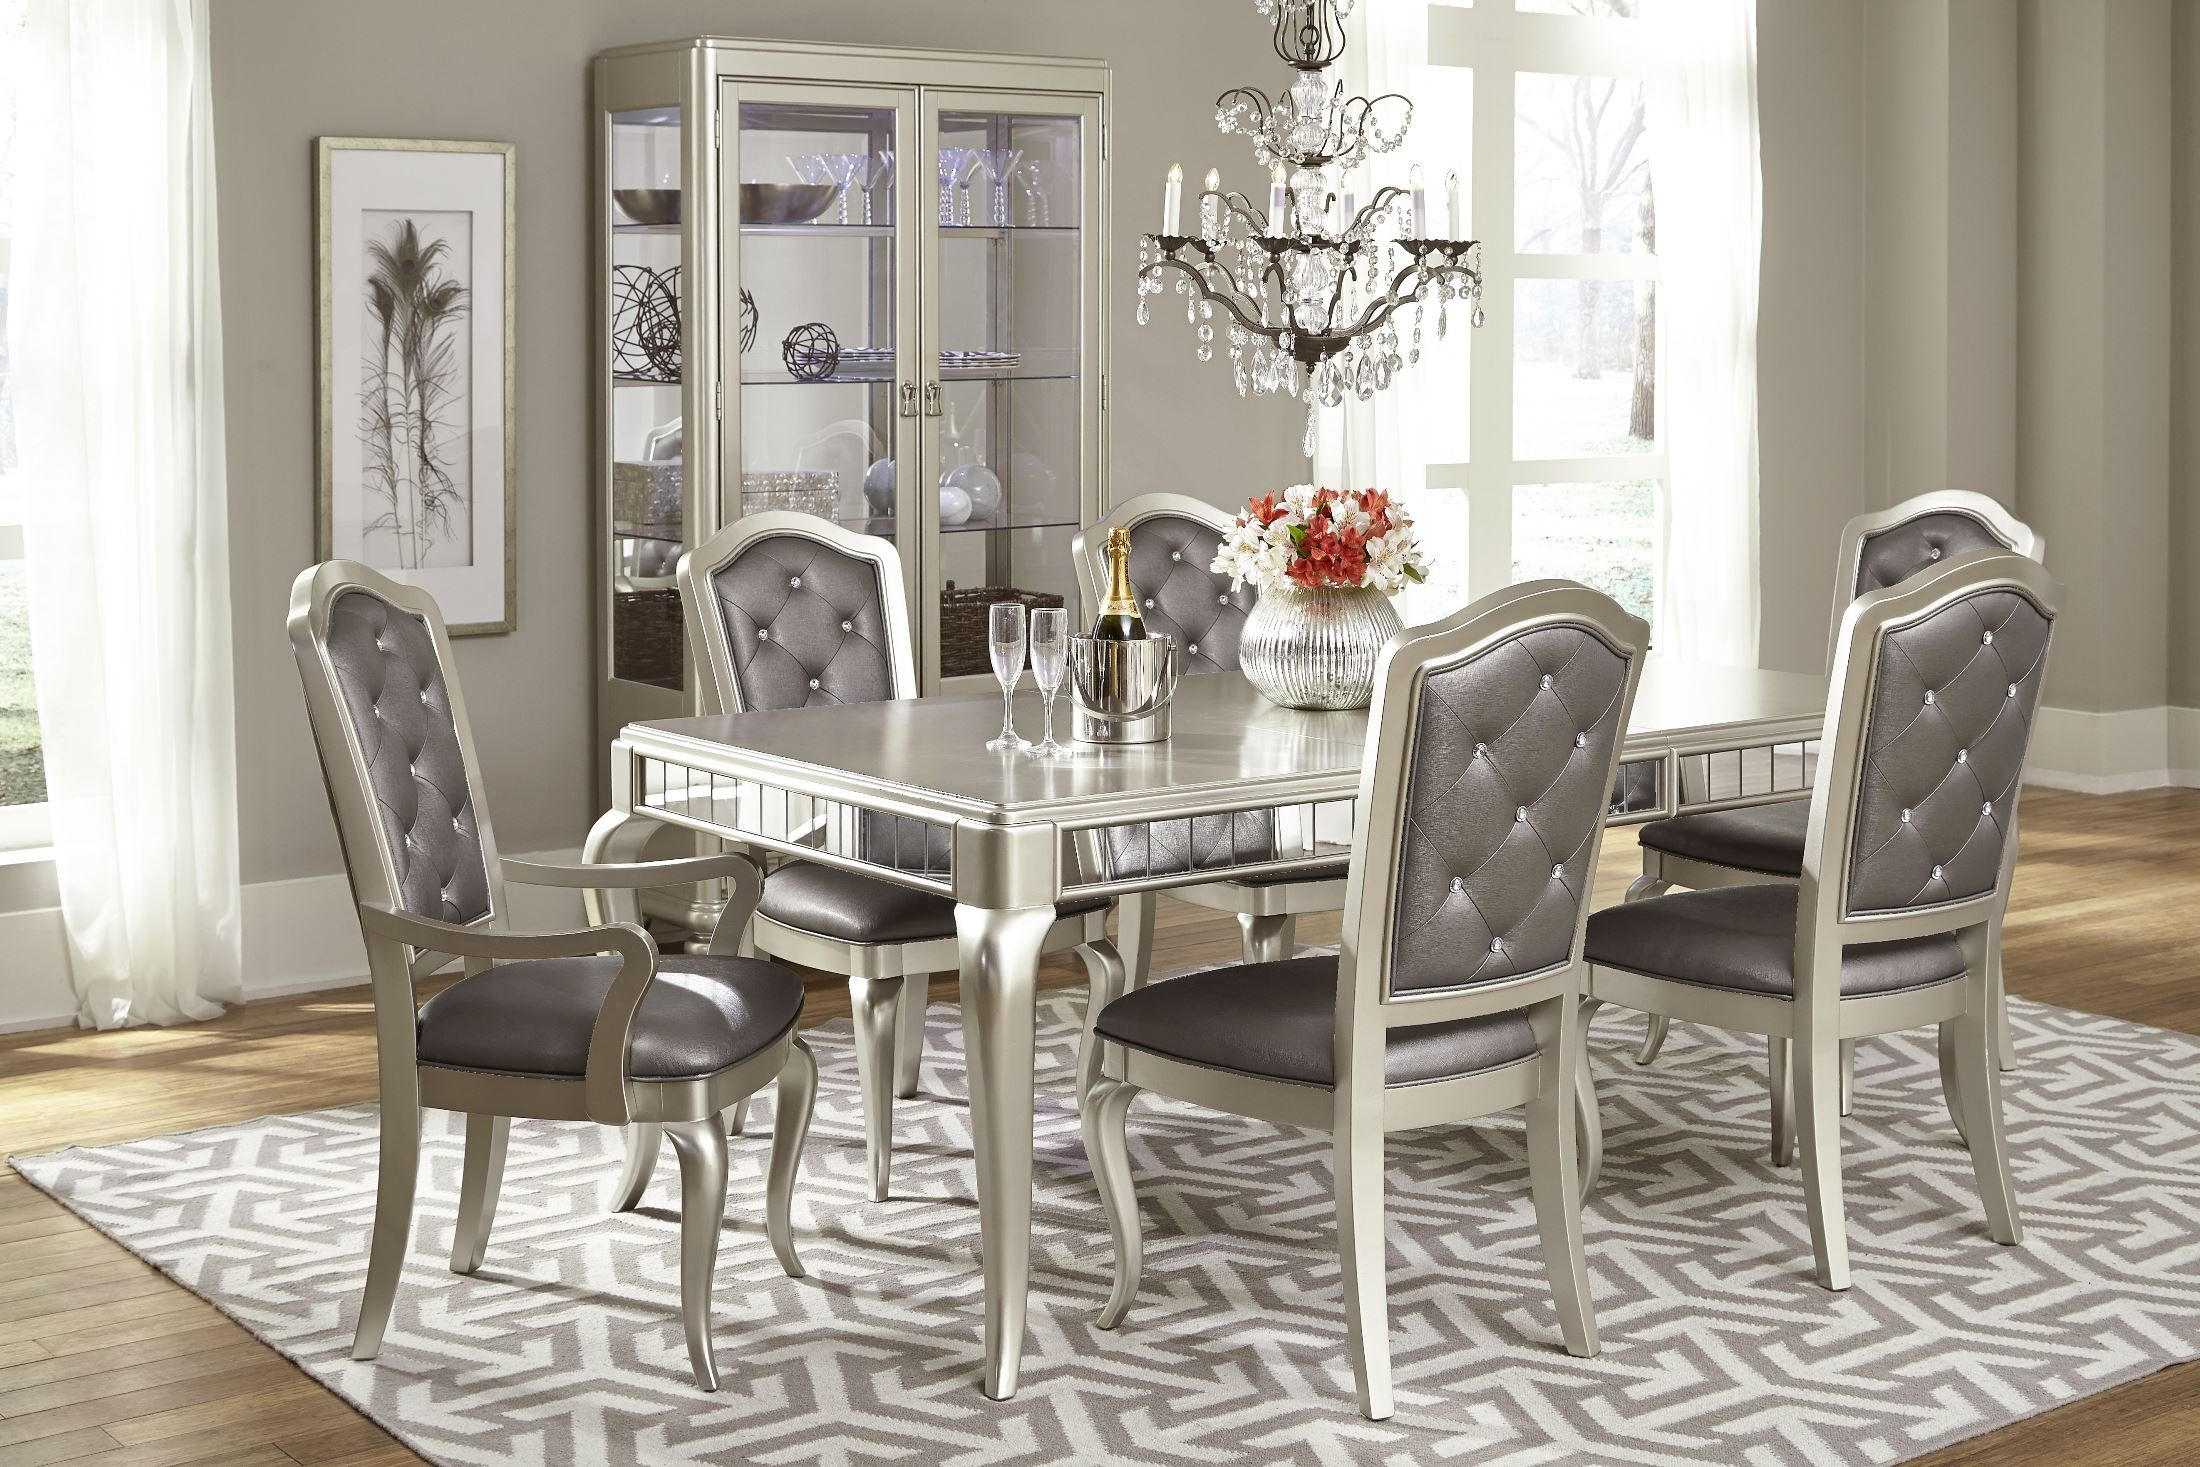 diva rectangular extendable leg dining room set from. Black Bedroom Furniture Sets. Home Design Ideas